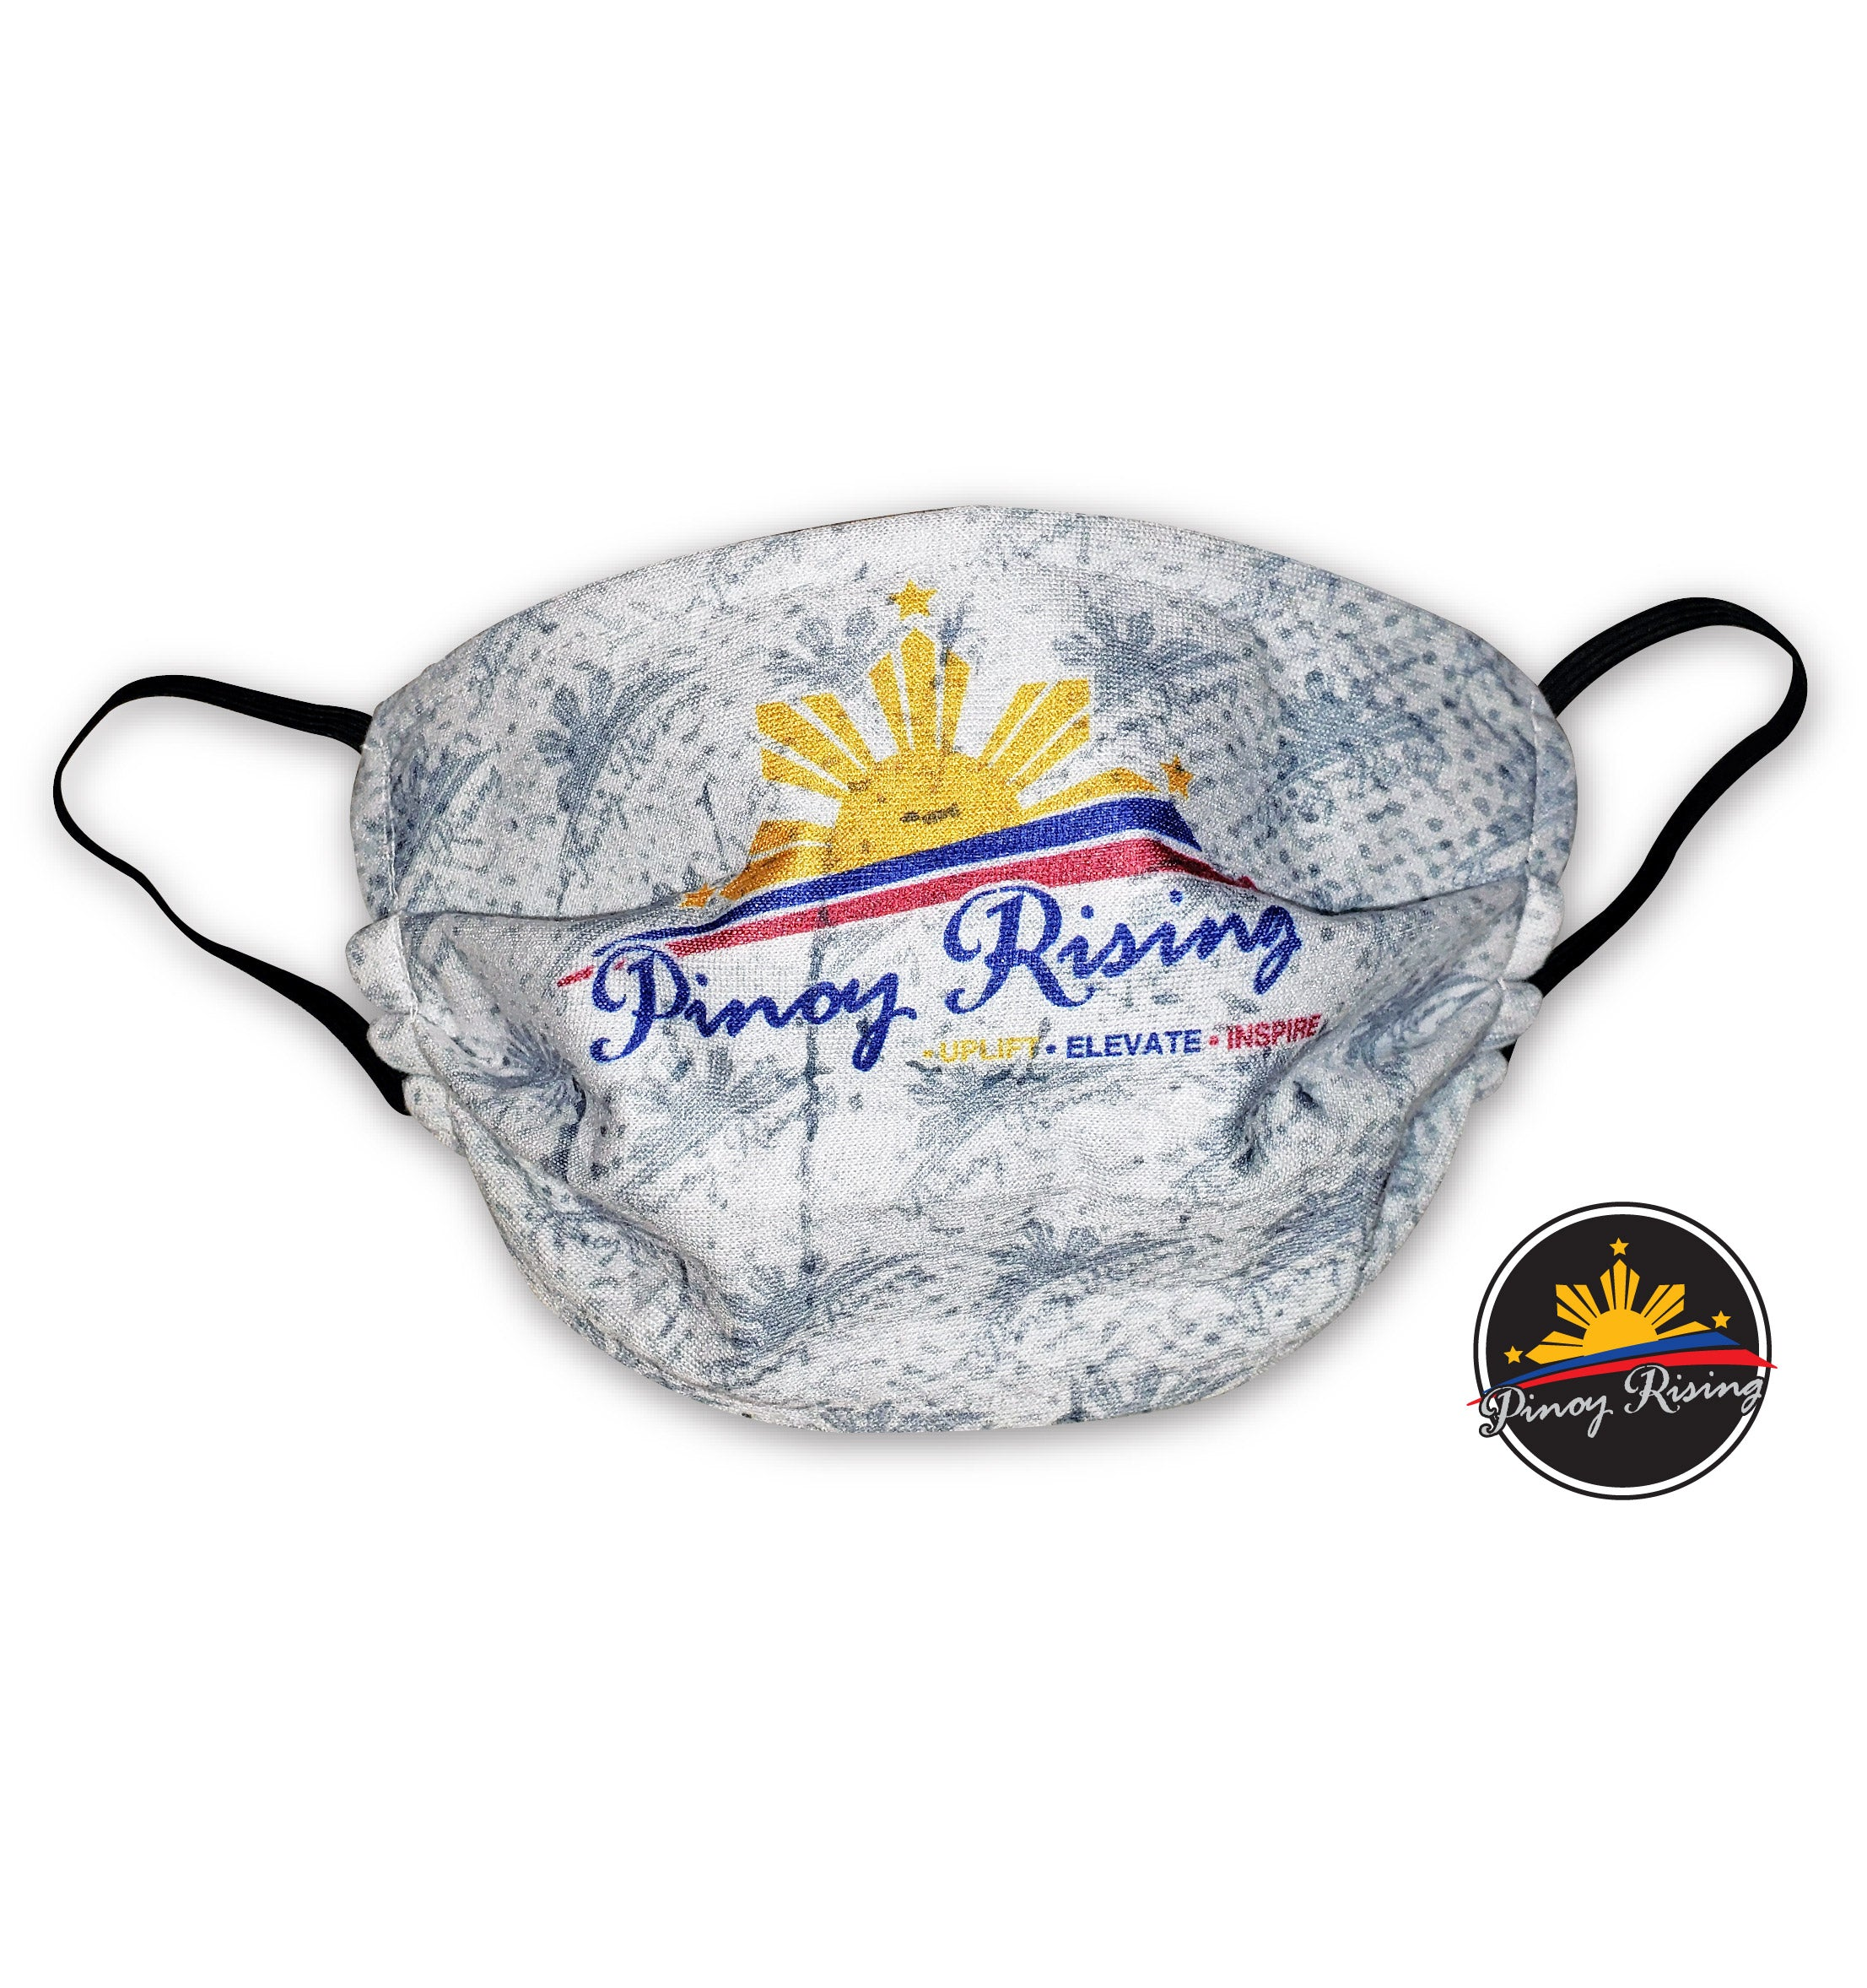 Face Cover - Pinoy Rising